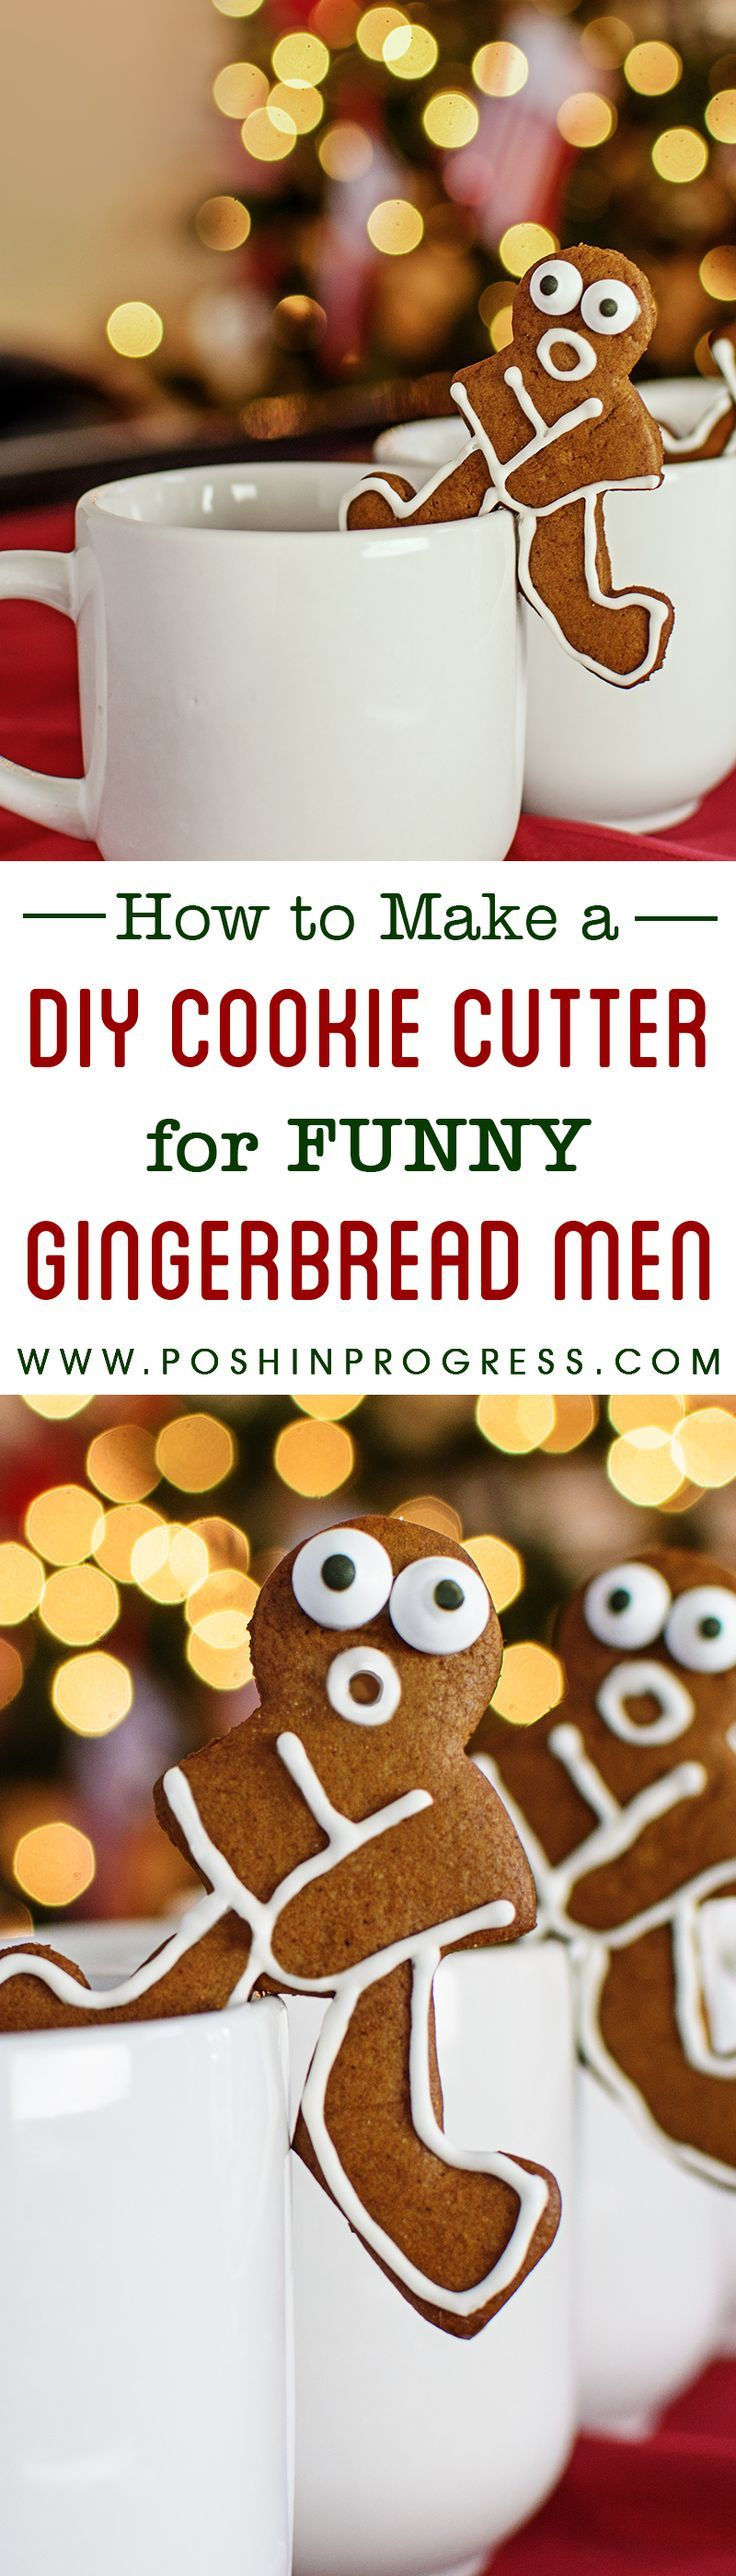 We decided to make mug hanger gingerbread man cookies this year for Christmas. We couldn't find the right cookie cutter so we made our own! It was pretty easy. #diy #gingerbread #christmas #cookies